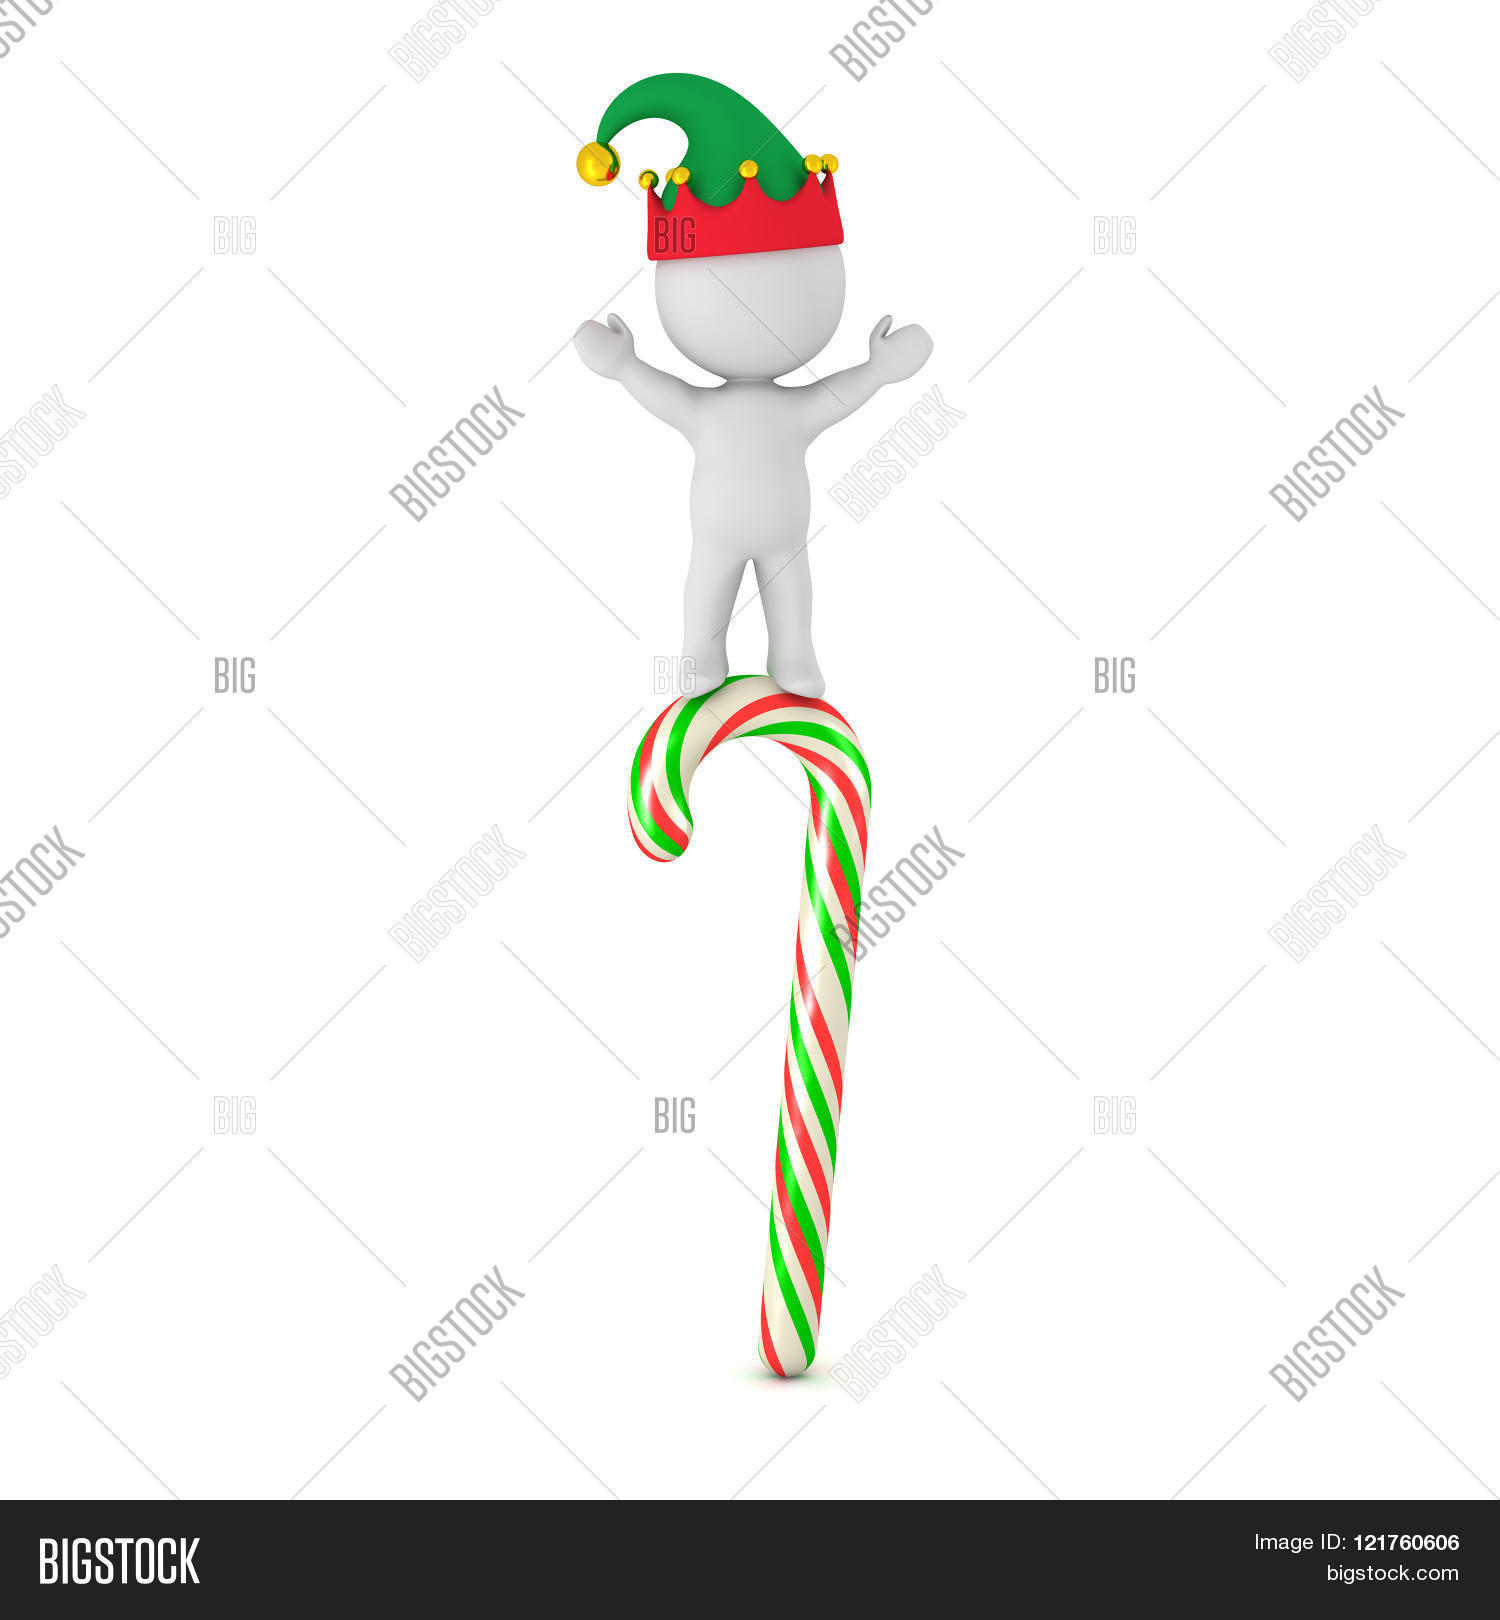 daf57062f8492 Small 3D character with elf hat standing with arms raised on top of a multicolored  candy cane. Isolated on white background.